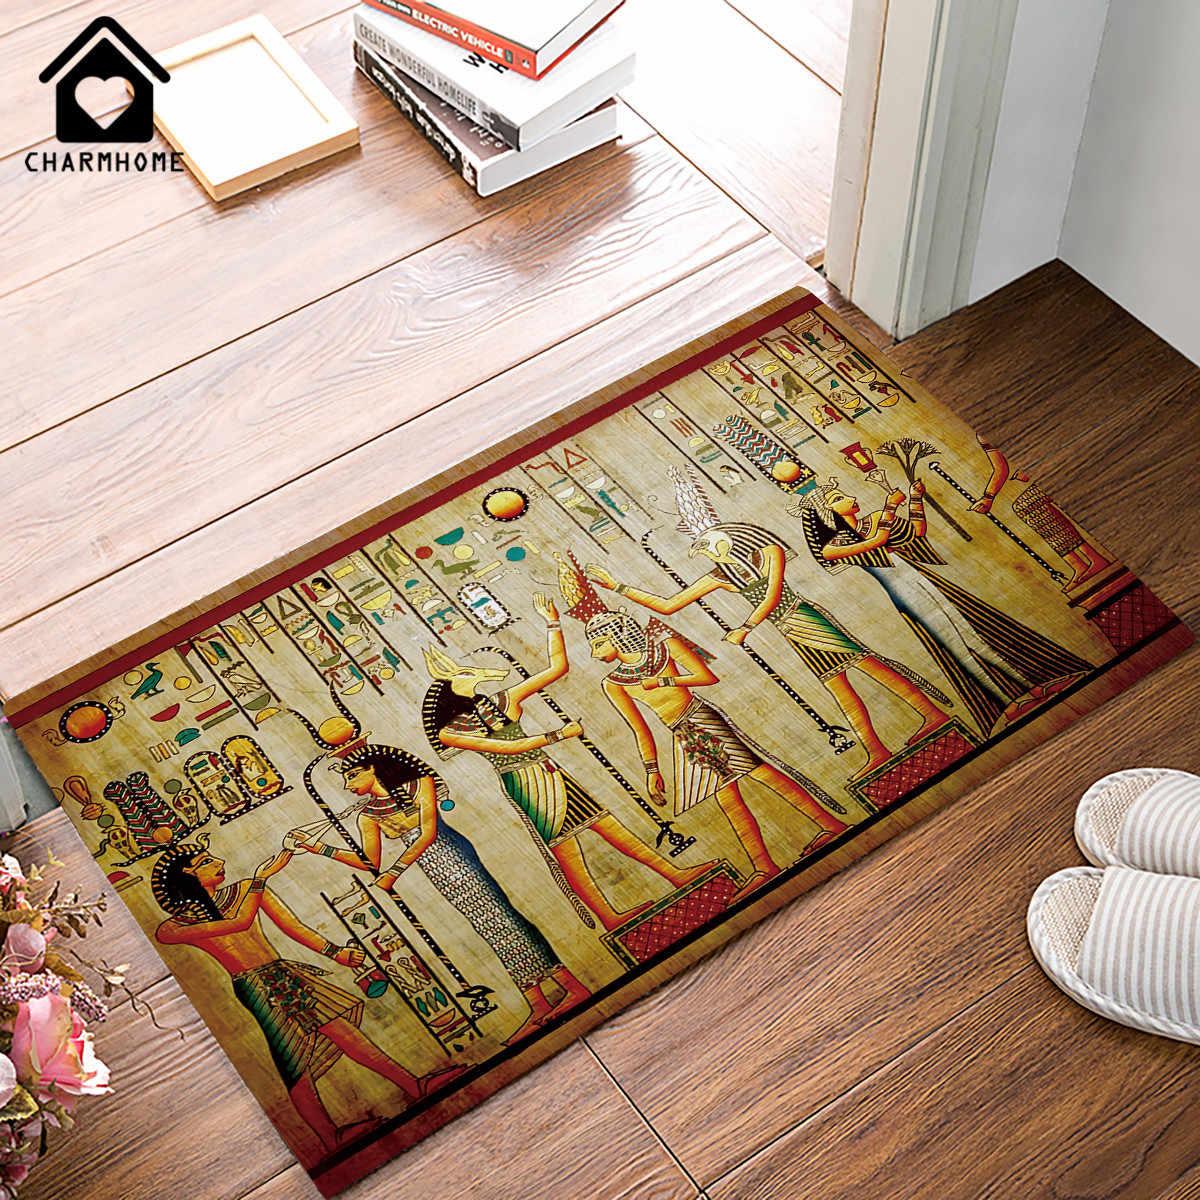 CHARMHOME Floor Mat Carpet Ancient Egyptian Life Printed Pattern Living Room Doormat Bath Rug Hallway Kitchen Non-slip Bedroom